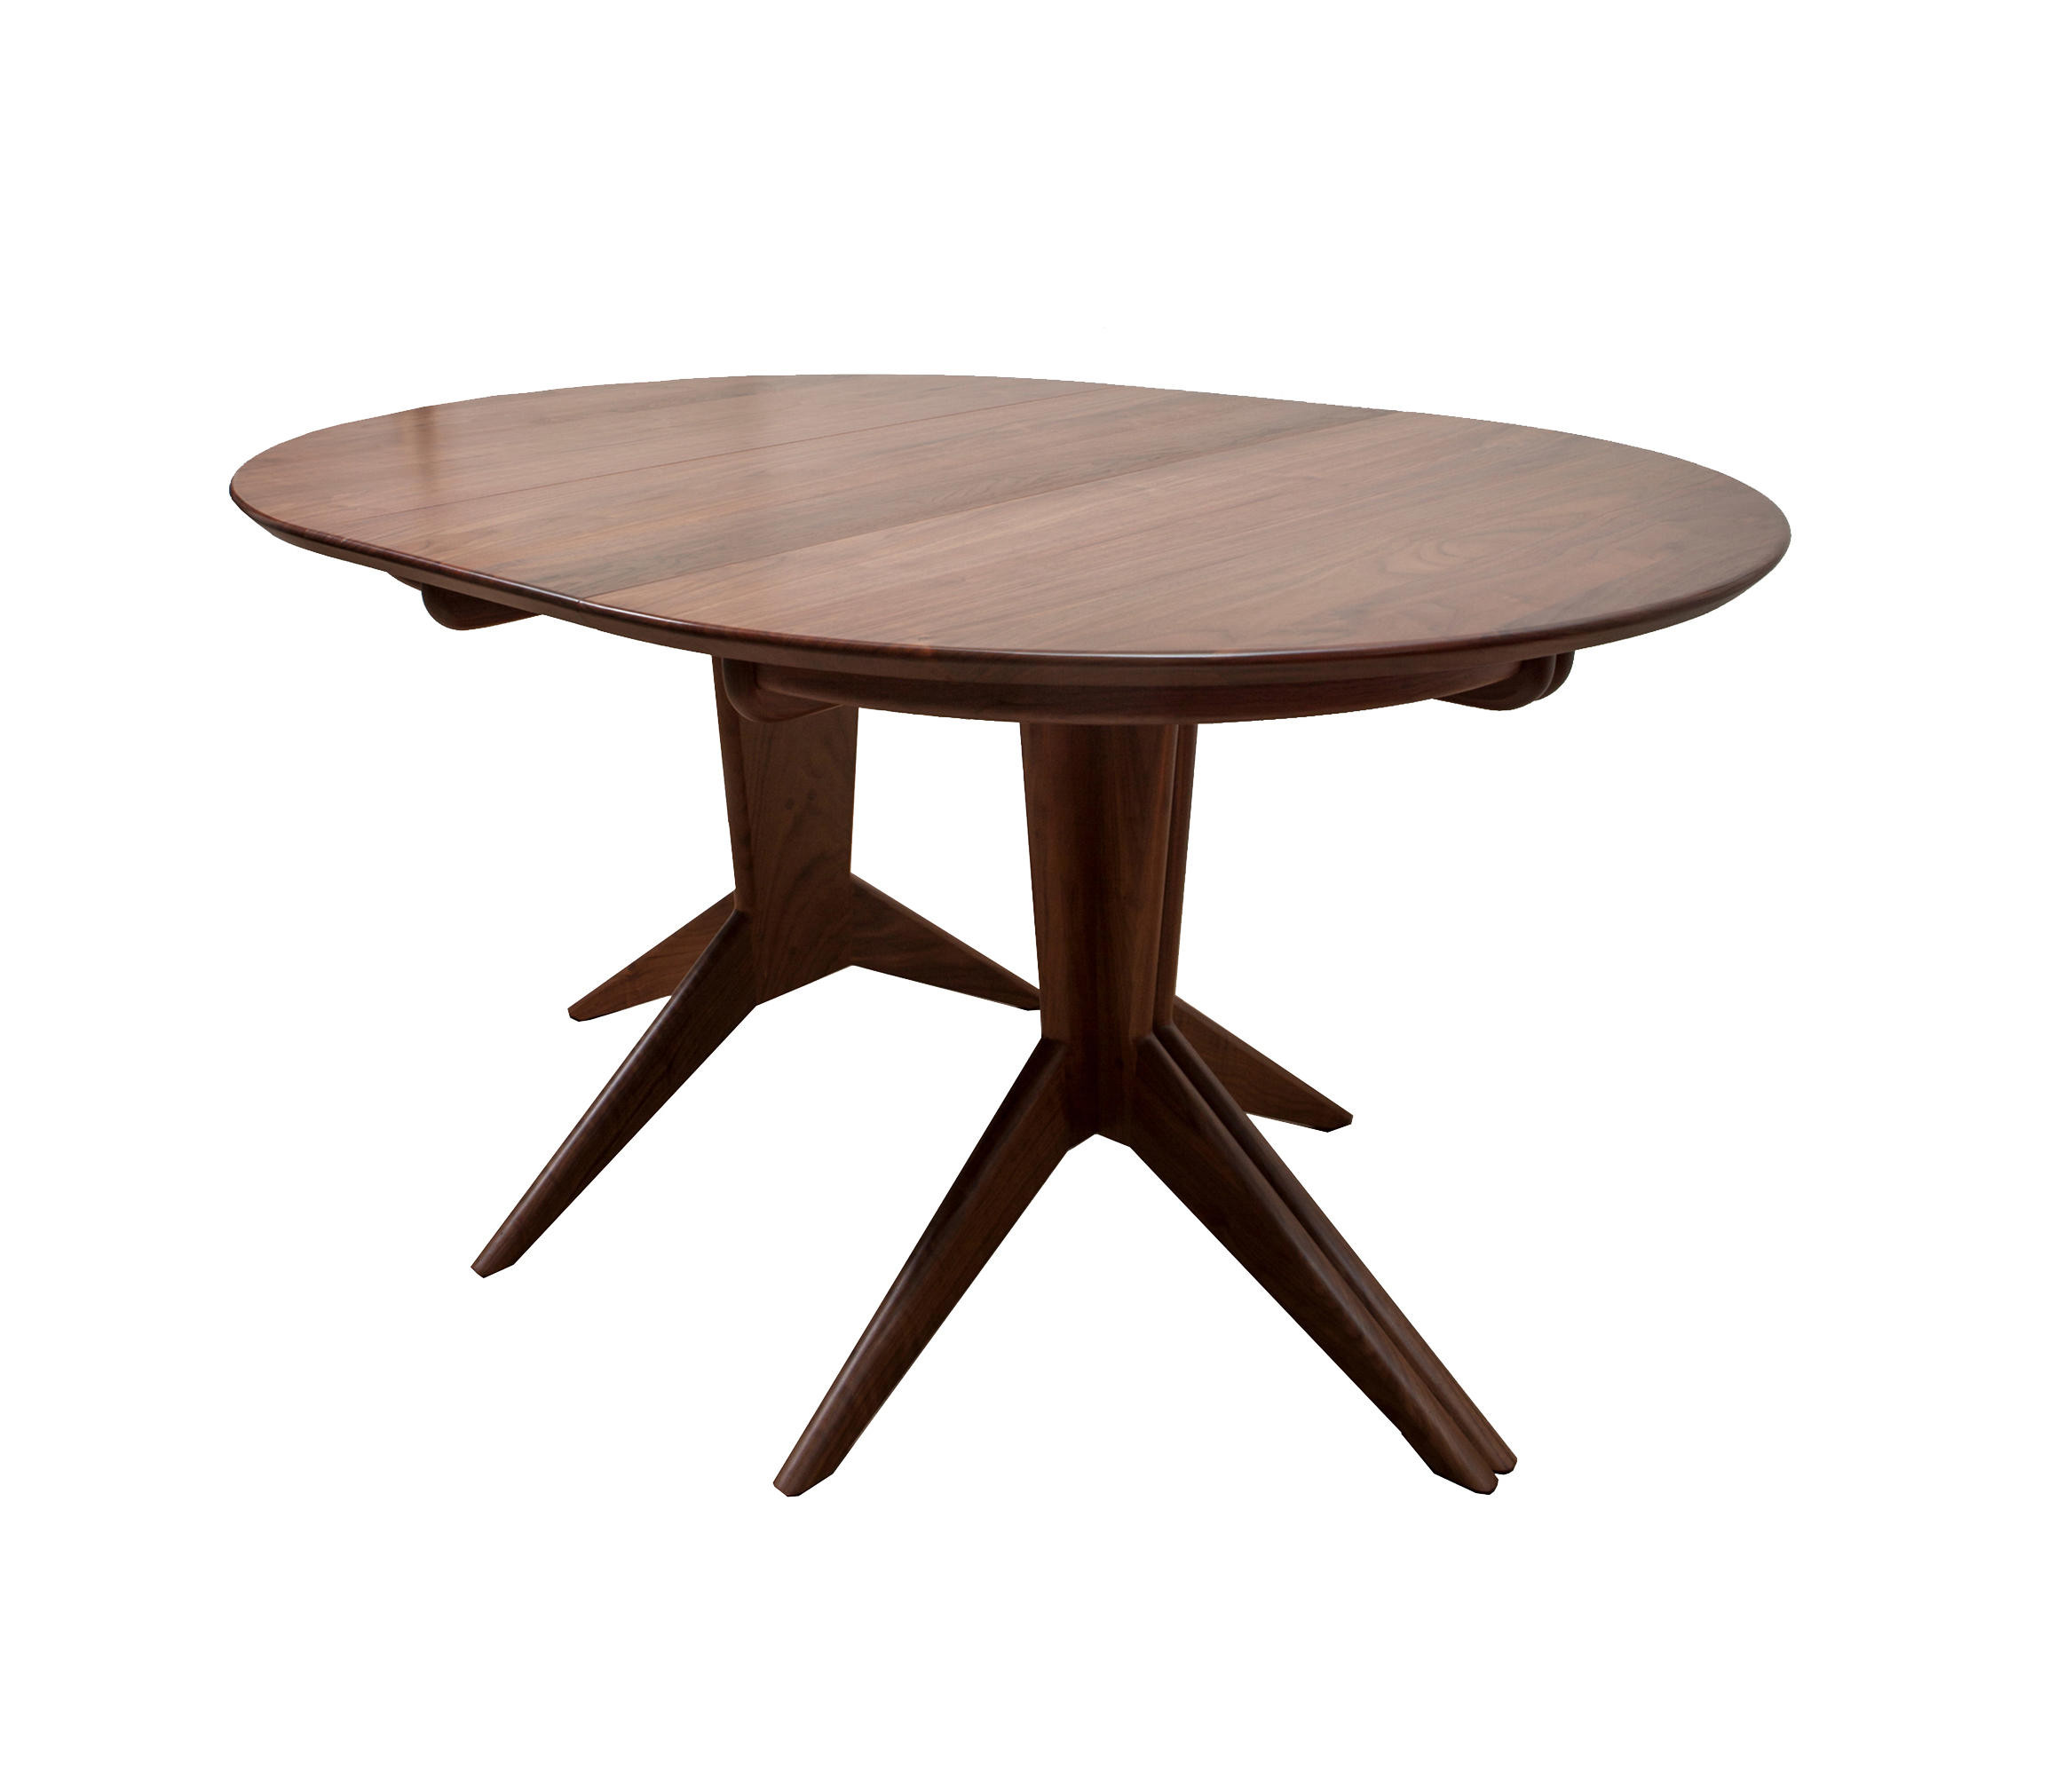 Best ideas about Extension Dining Table . Save or Pin PEDESTAL EXTENSION DINING TABLE Dining tables from Now.